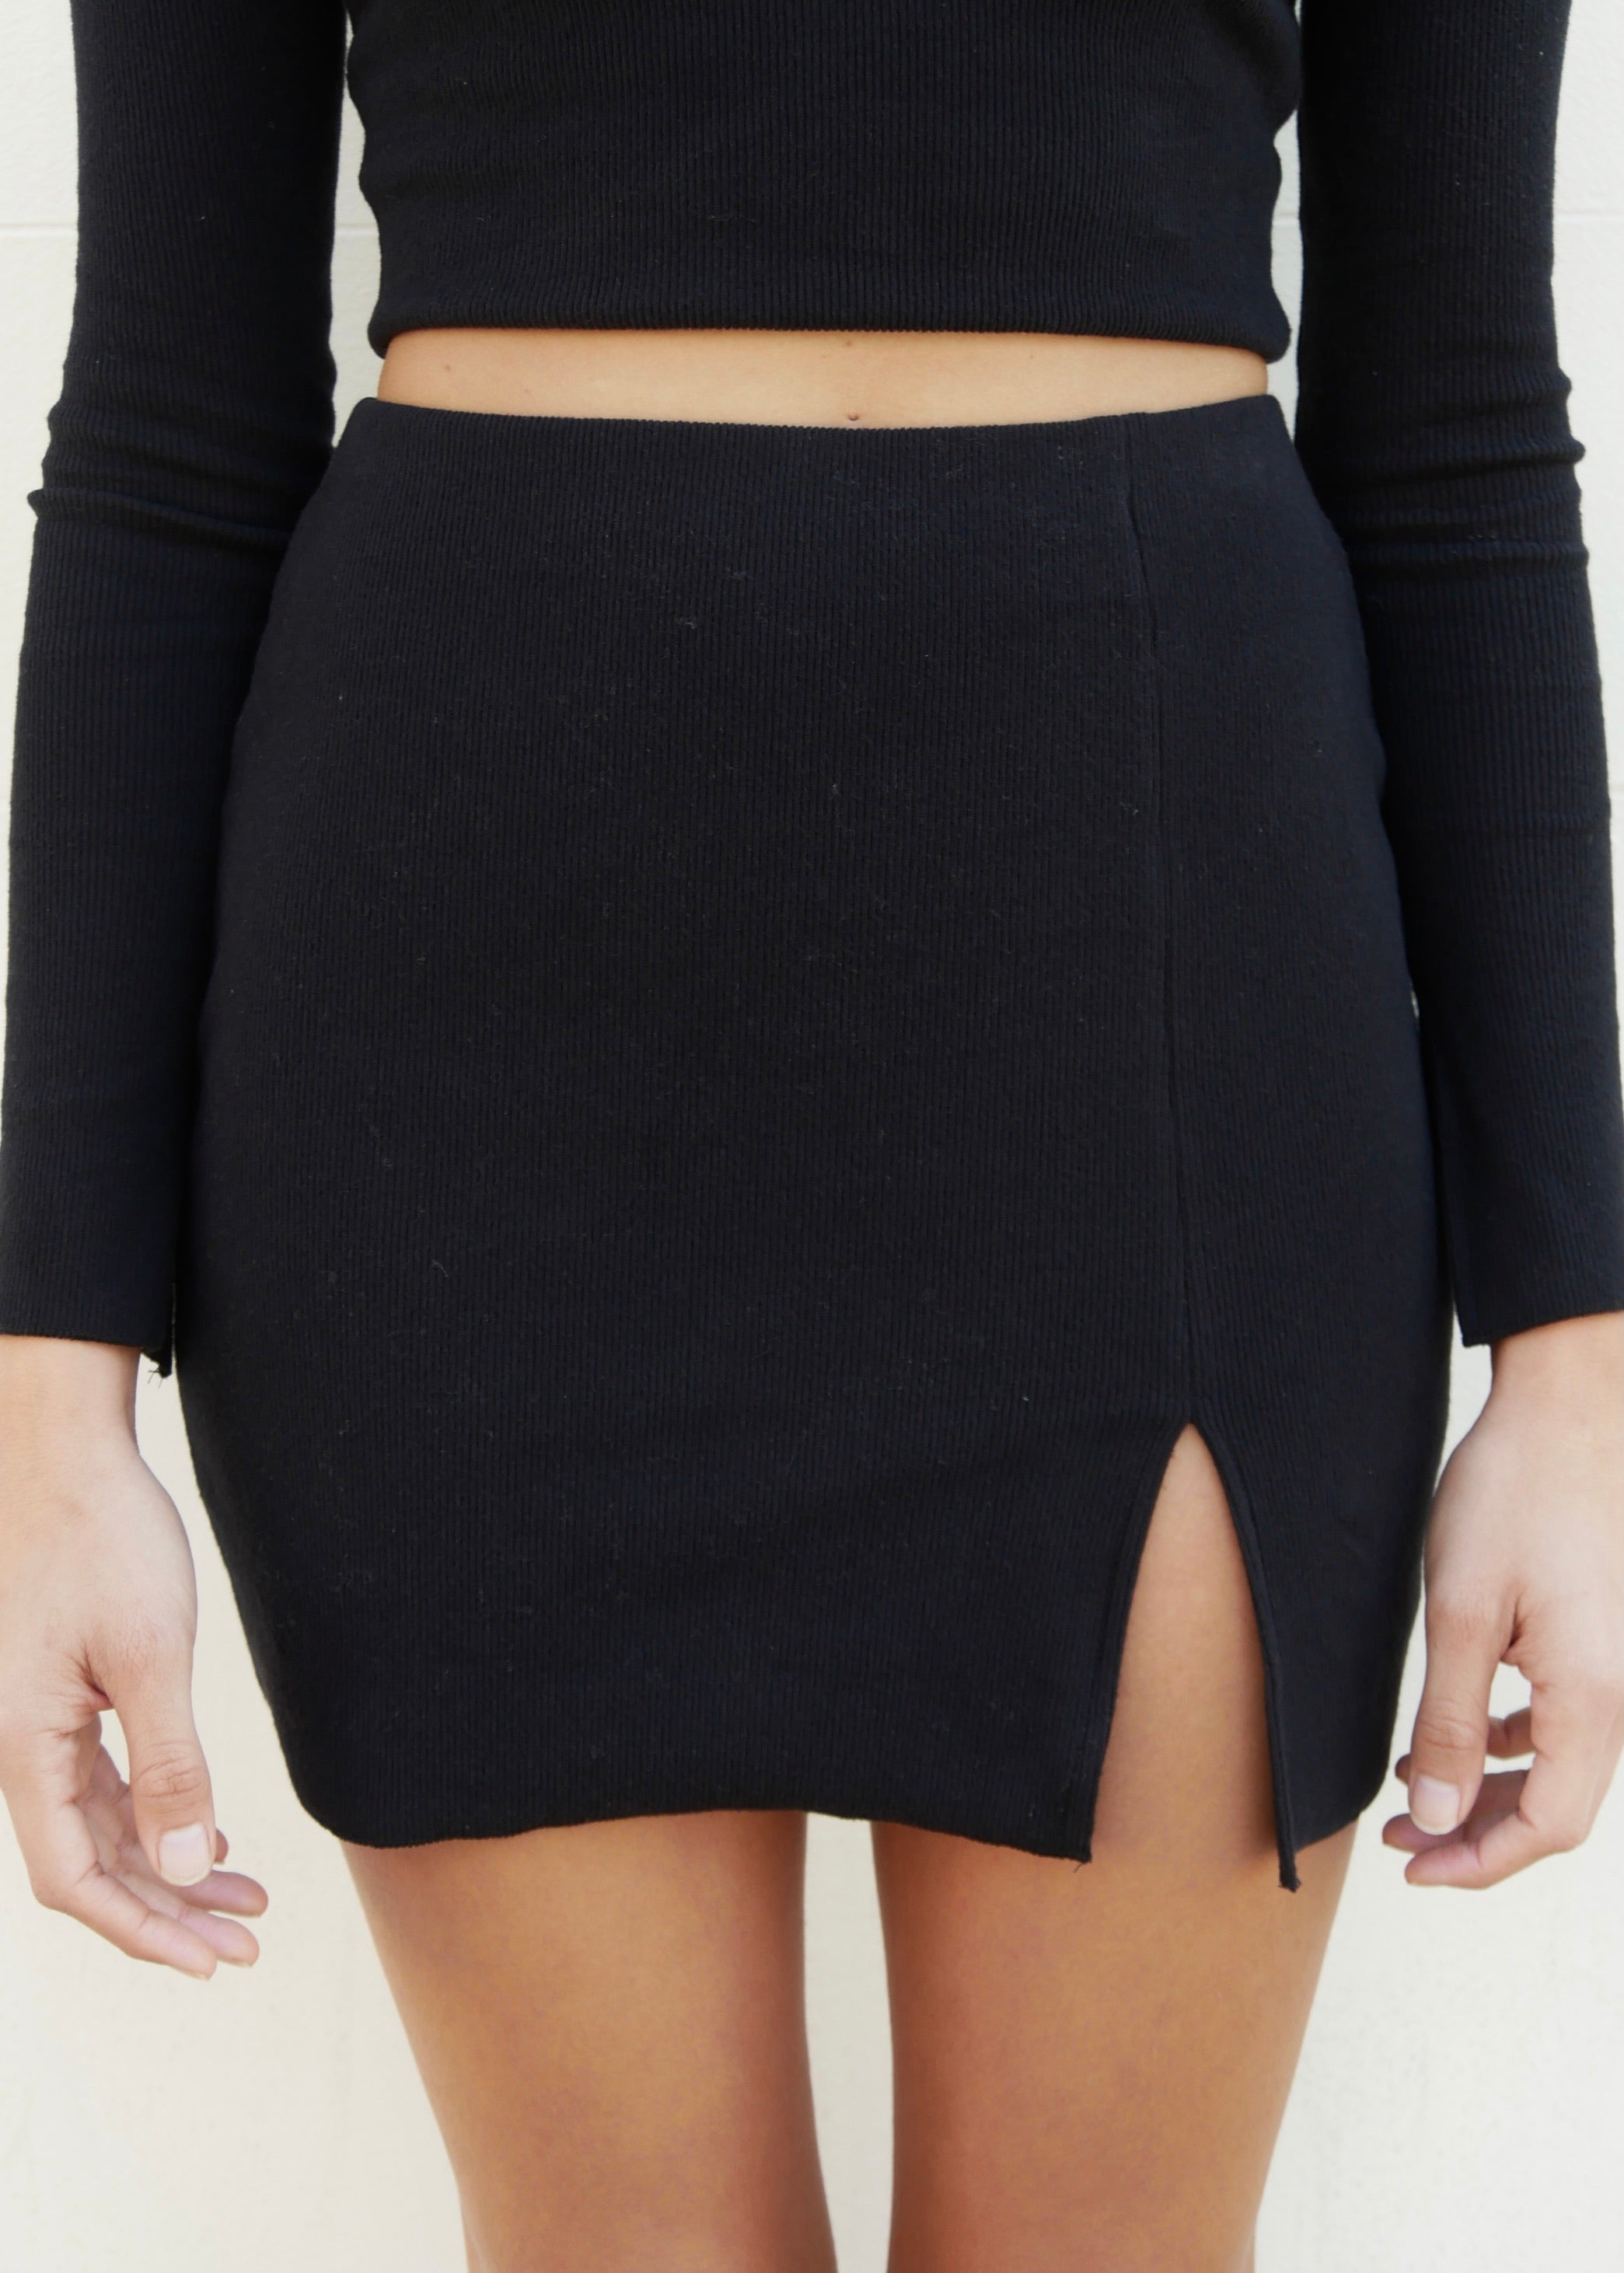 ORGANIC MINI SKIRT IN BLACK